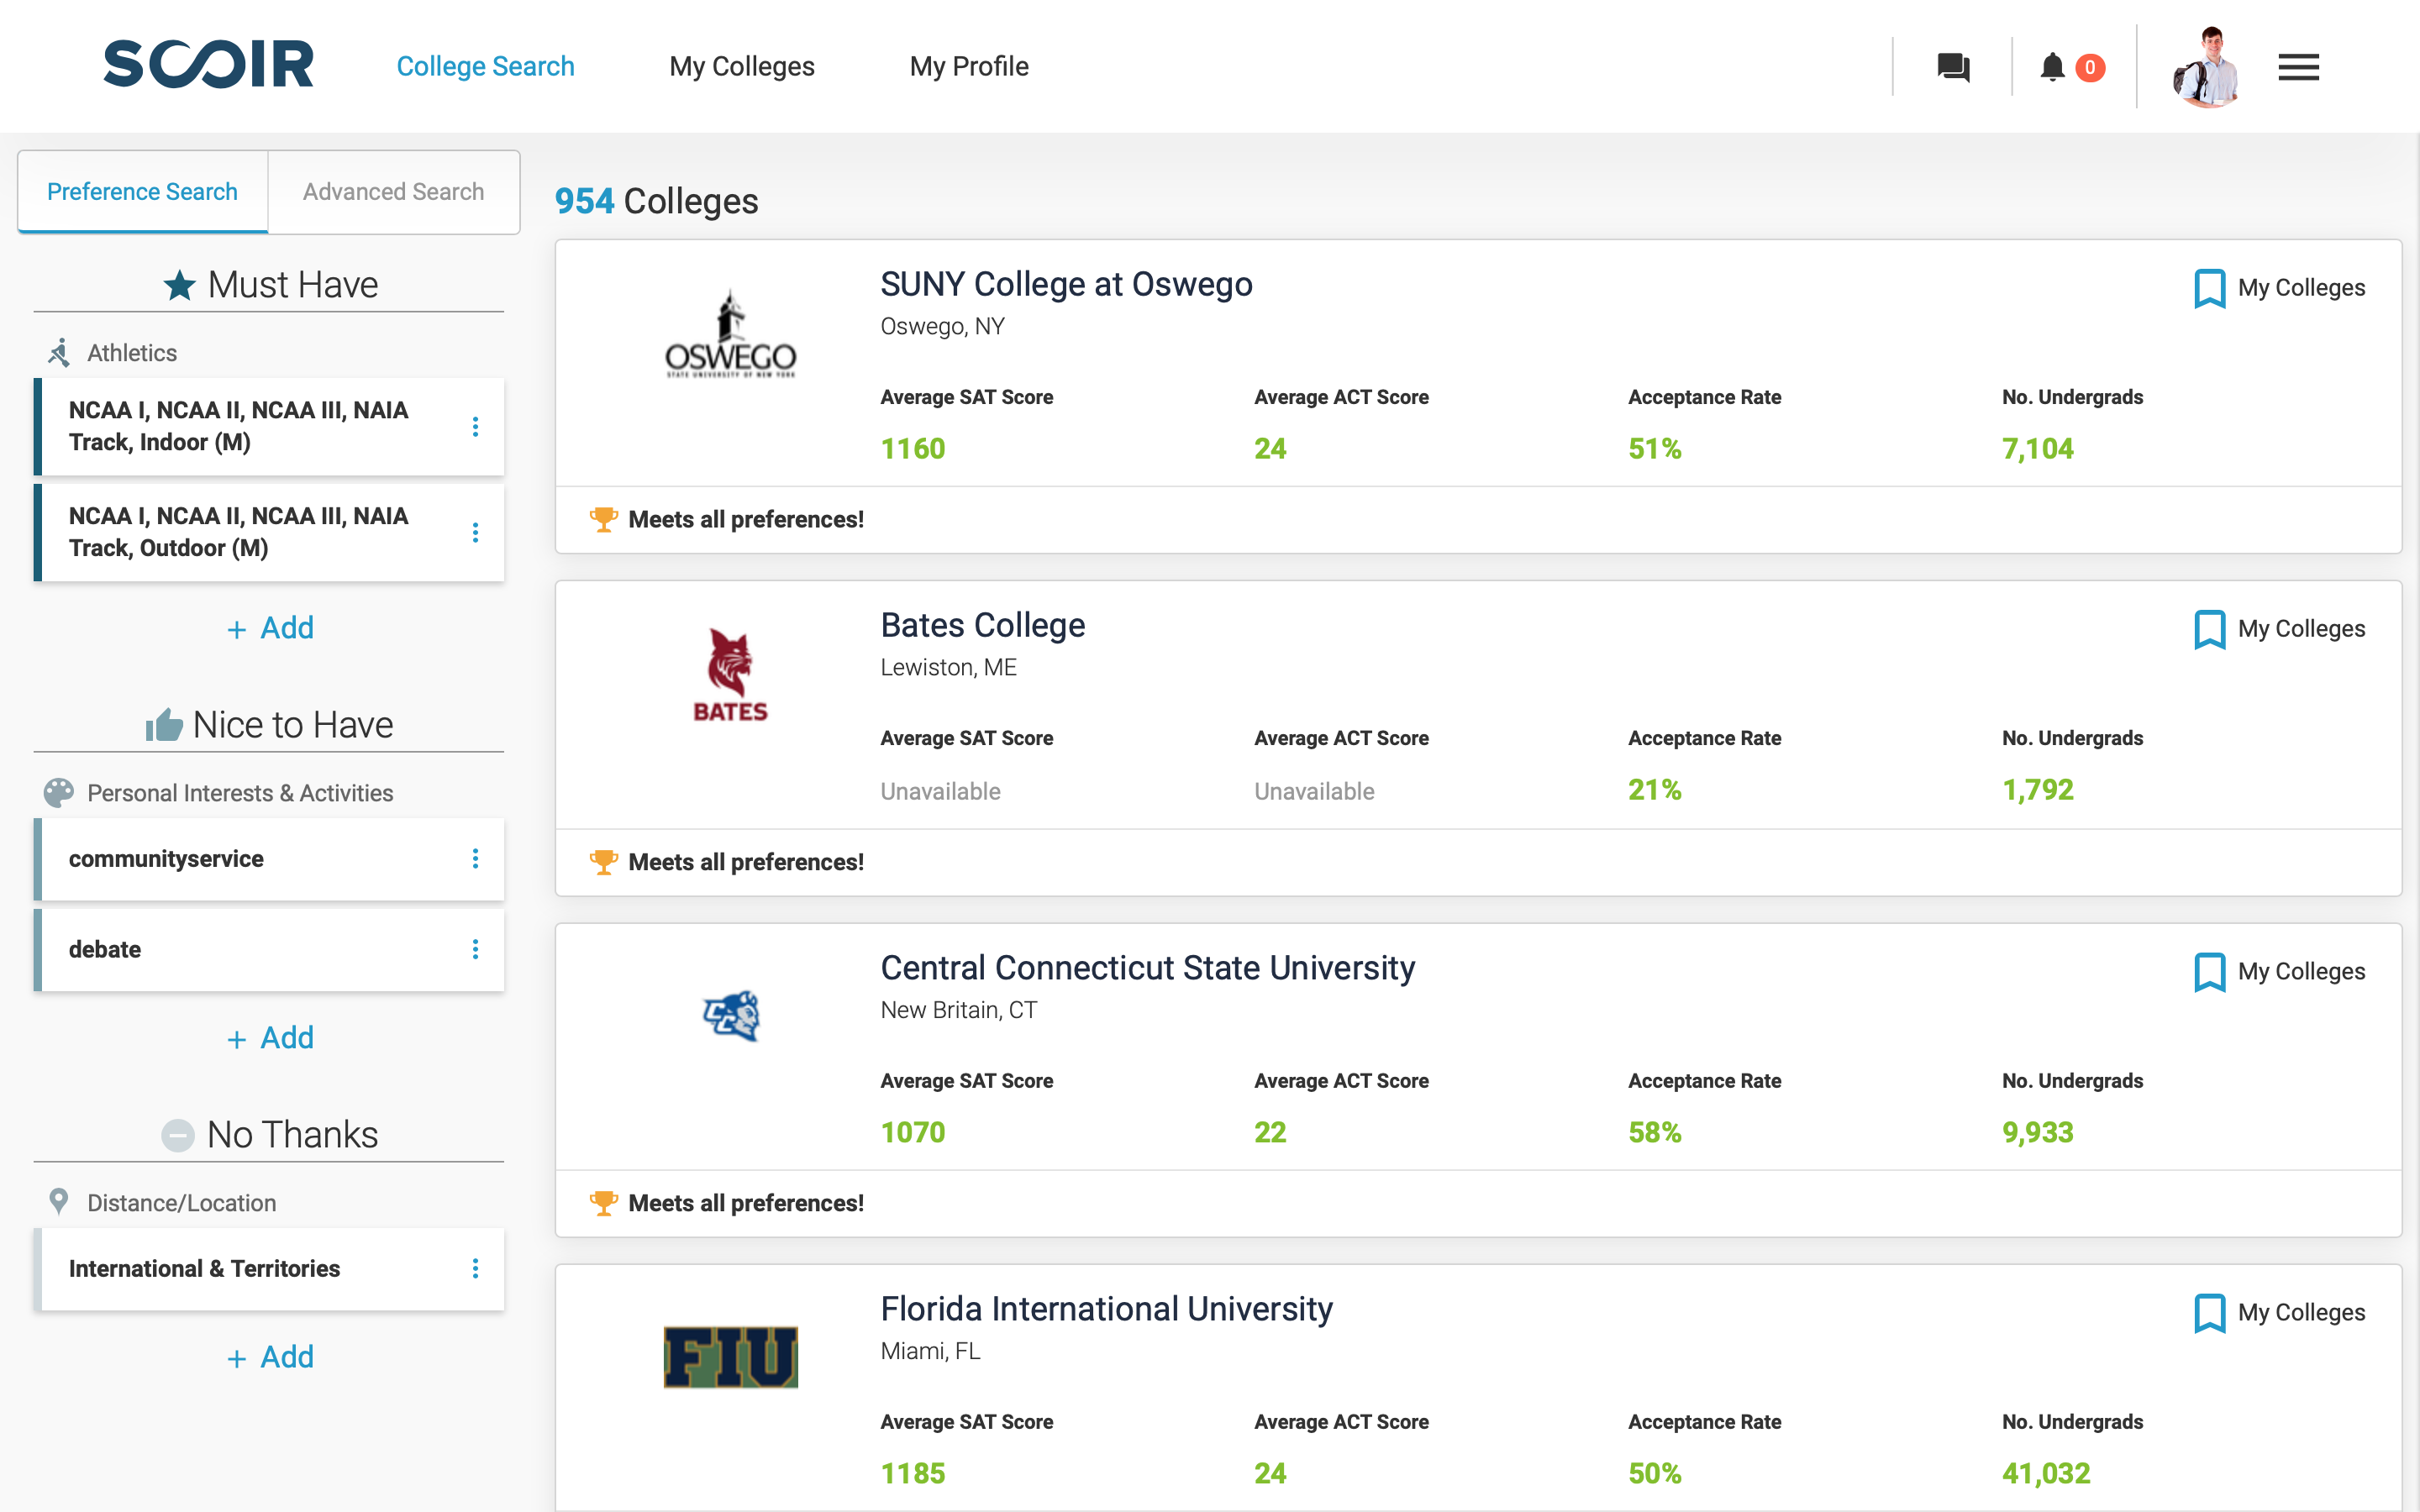 _student_-college-search-preference-search.png